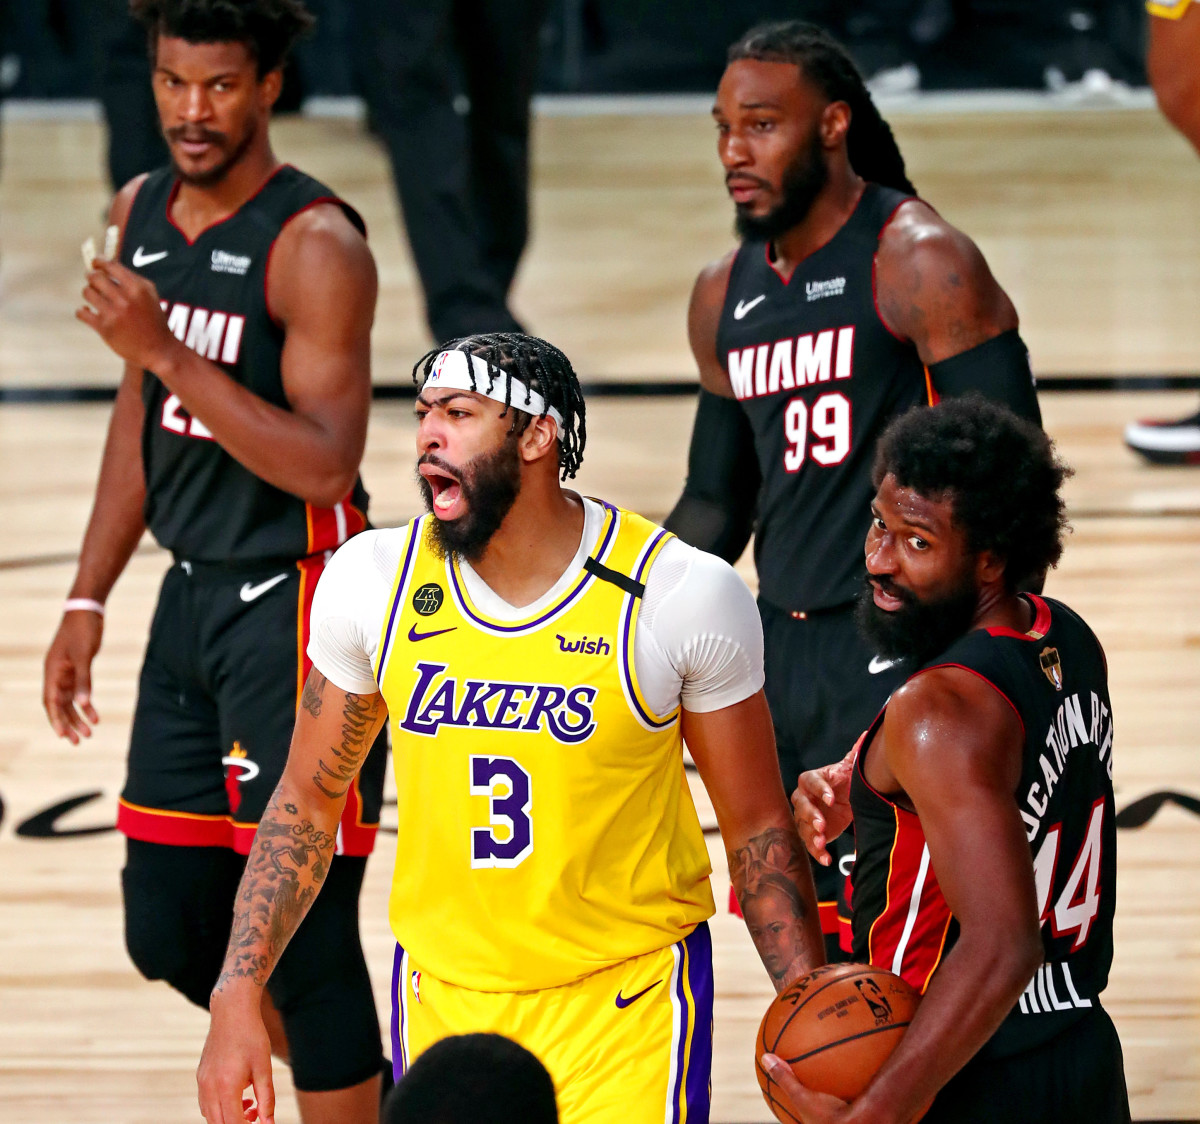 Los Angeles Lakers forward Anthony Davis (3) reacts after a foul during the fourth quarter against the Miami Heat in game one of the 2020 NBA Finals at AdventHealth Arena.